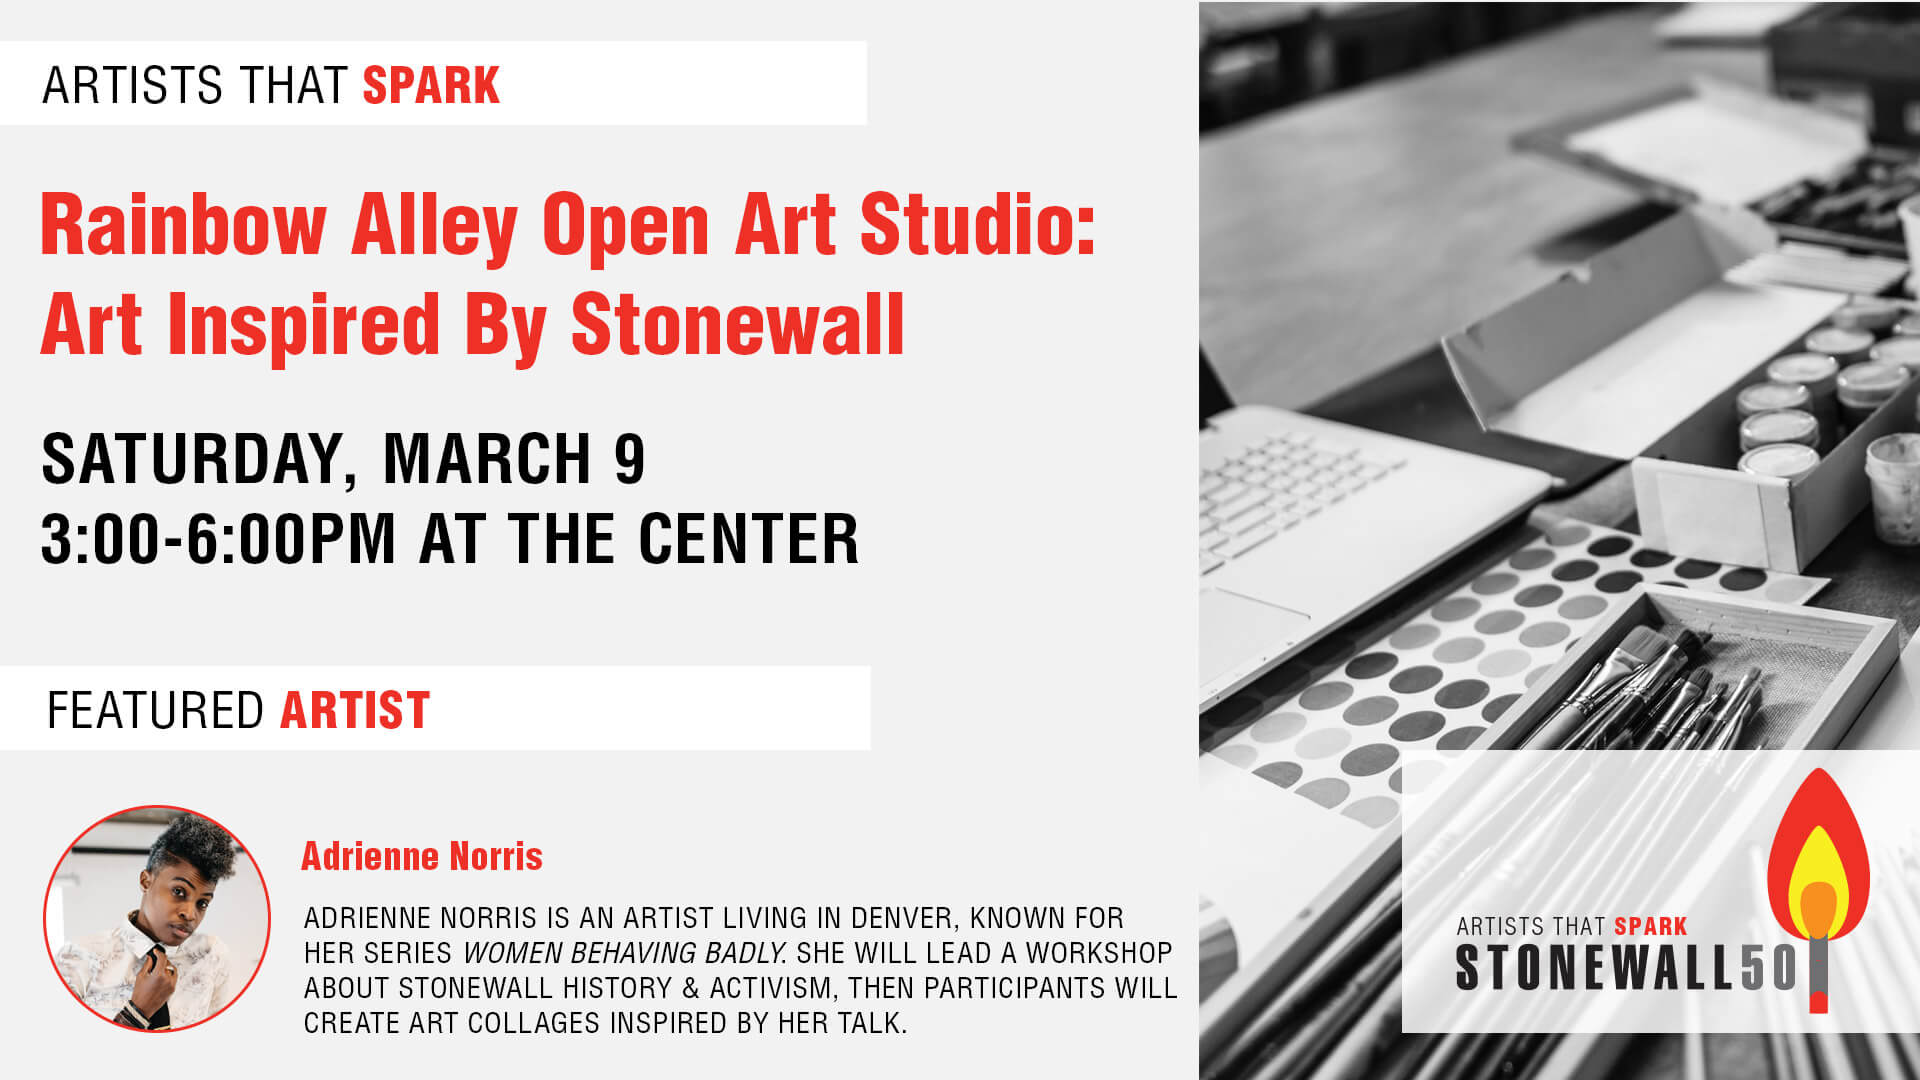 Artists That Spark - Rainbow Alley Open Art Studio: Art Inspired by Stonewall